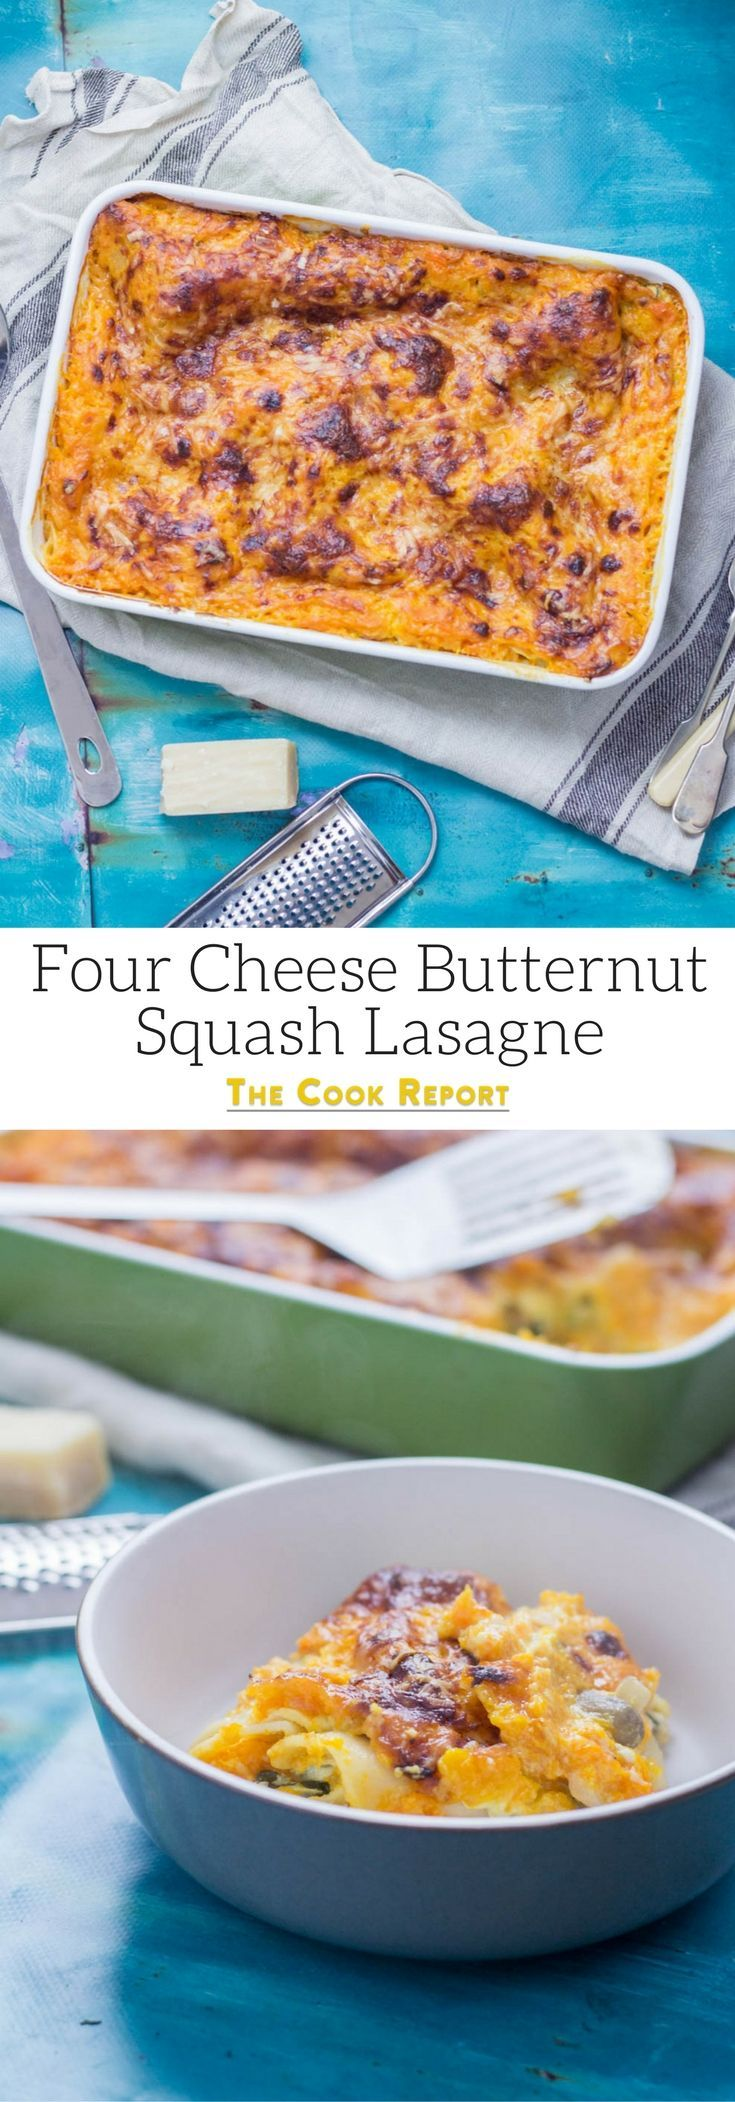 Four Cheese Butternut Squash Lasagne. This vegetarian twist on a classic pasta dish is the perfect comfort food! This four cheese butternut squash lasagne is layered with spinach and mushrooms. #lasagne #lasagna #squash #pasta #dinner